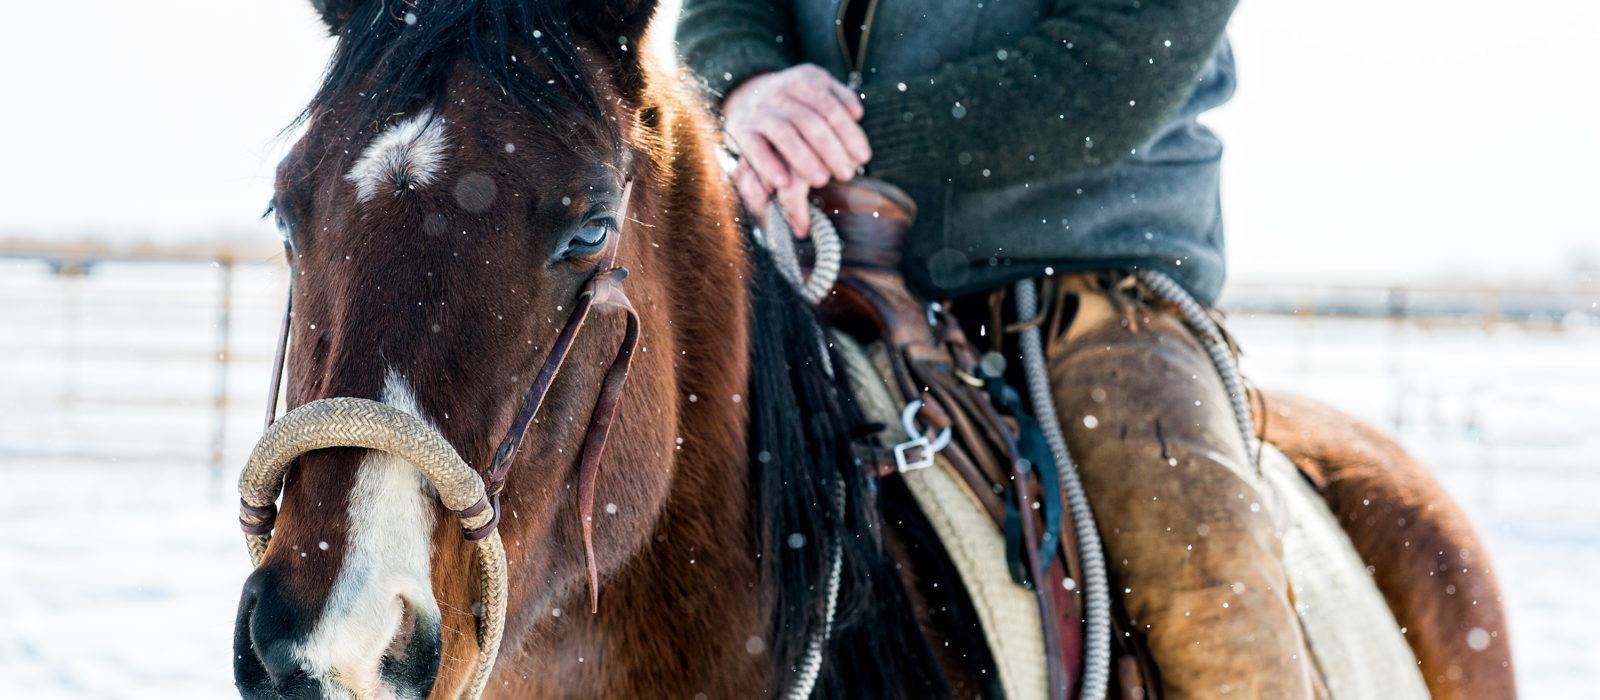 horse in snow with rider